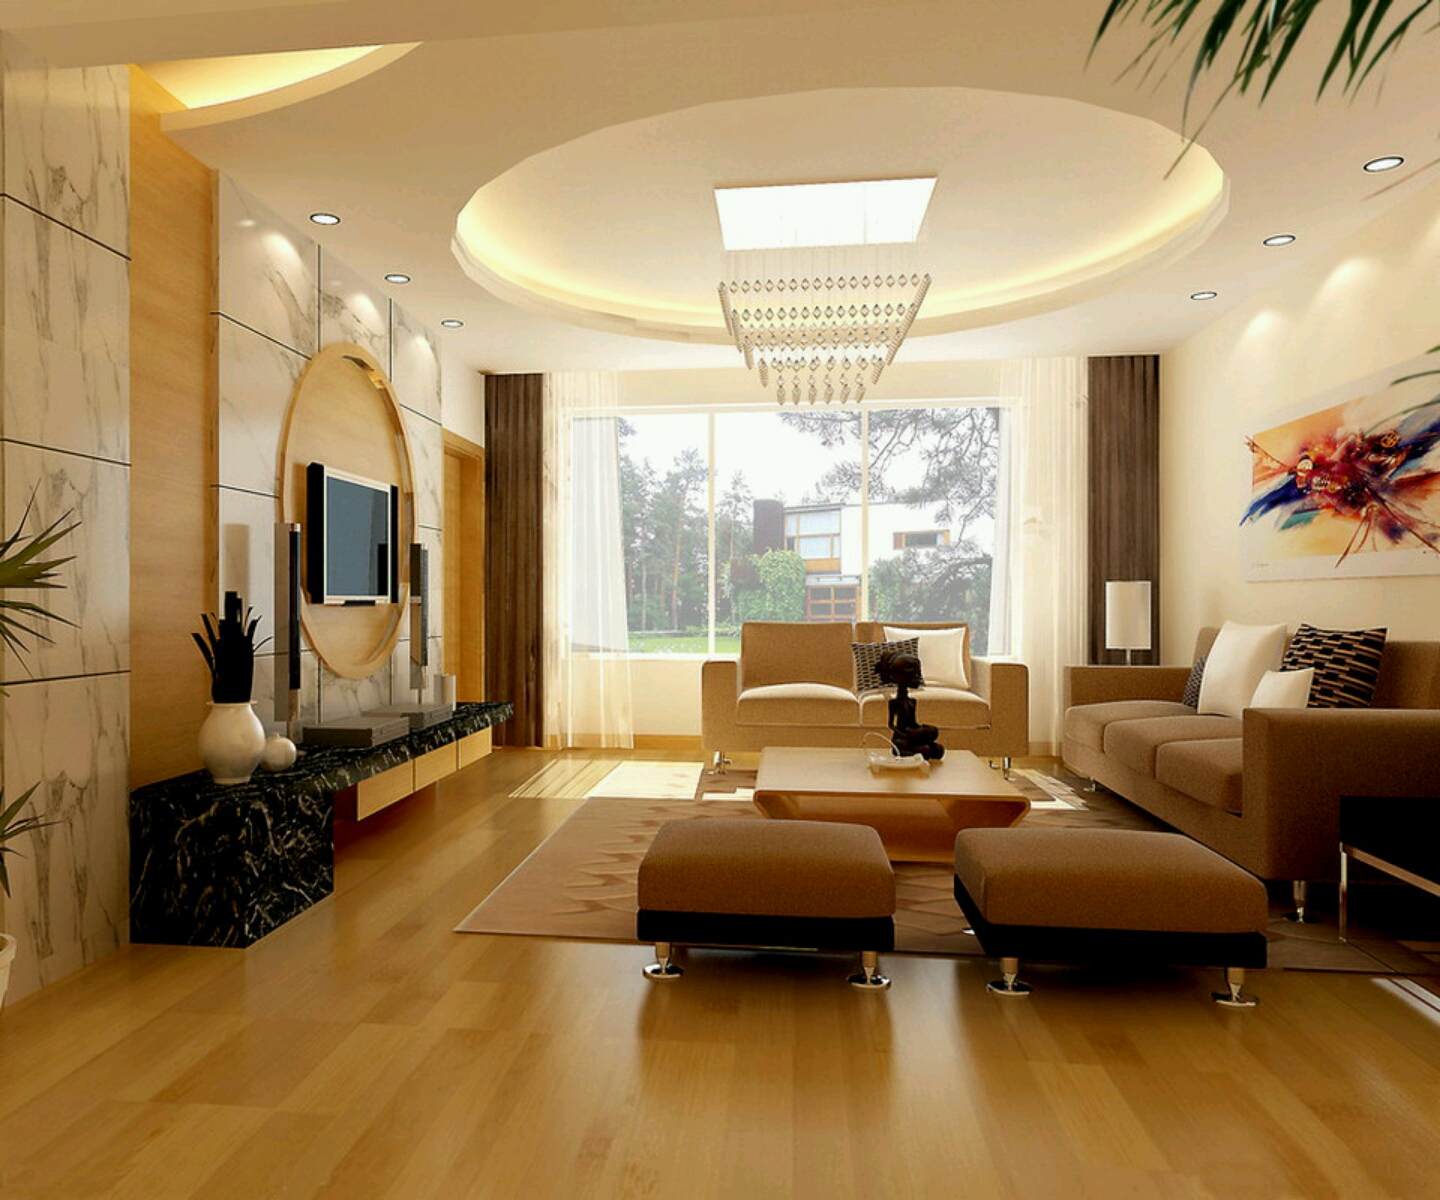 Modern interior decoration living rooms ceiling designs for Interior design styles living room